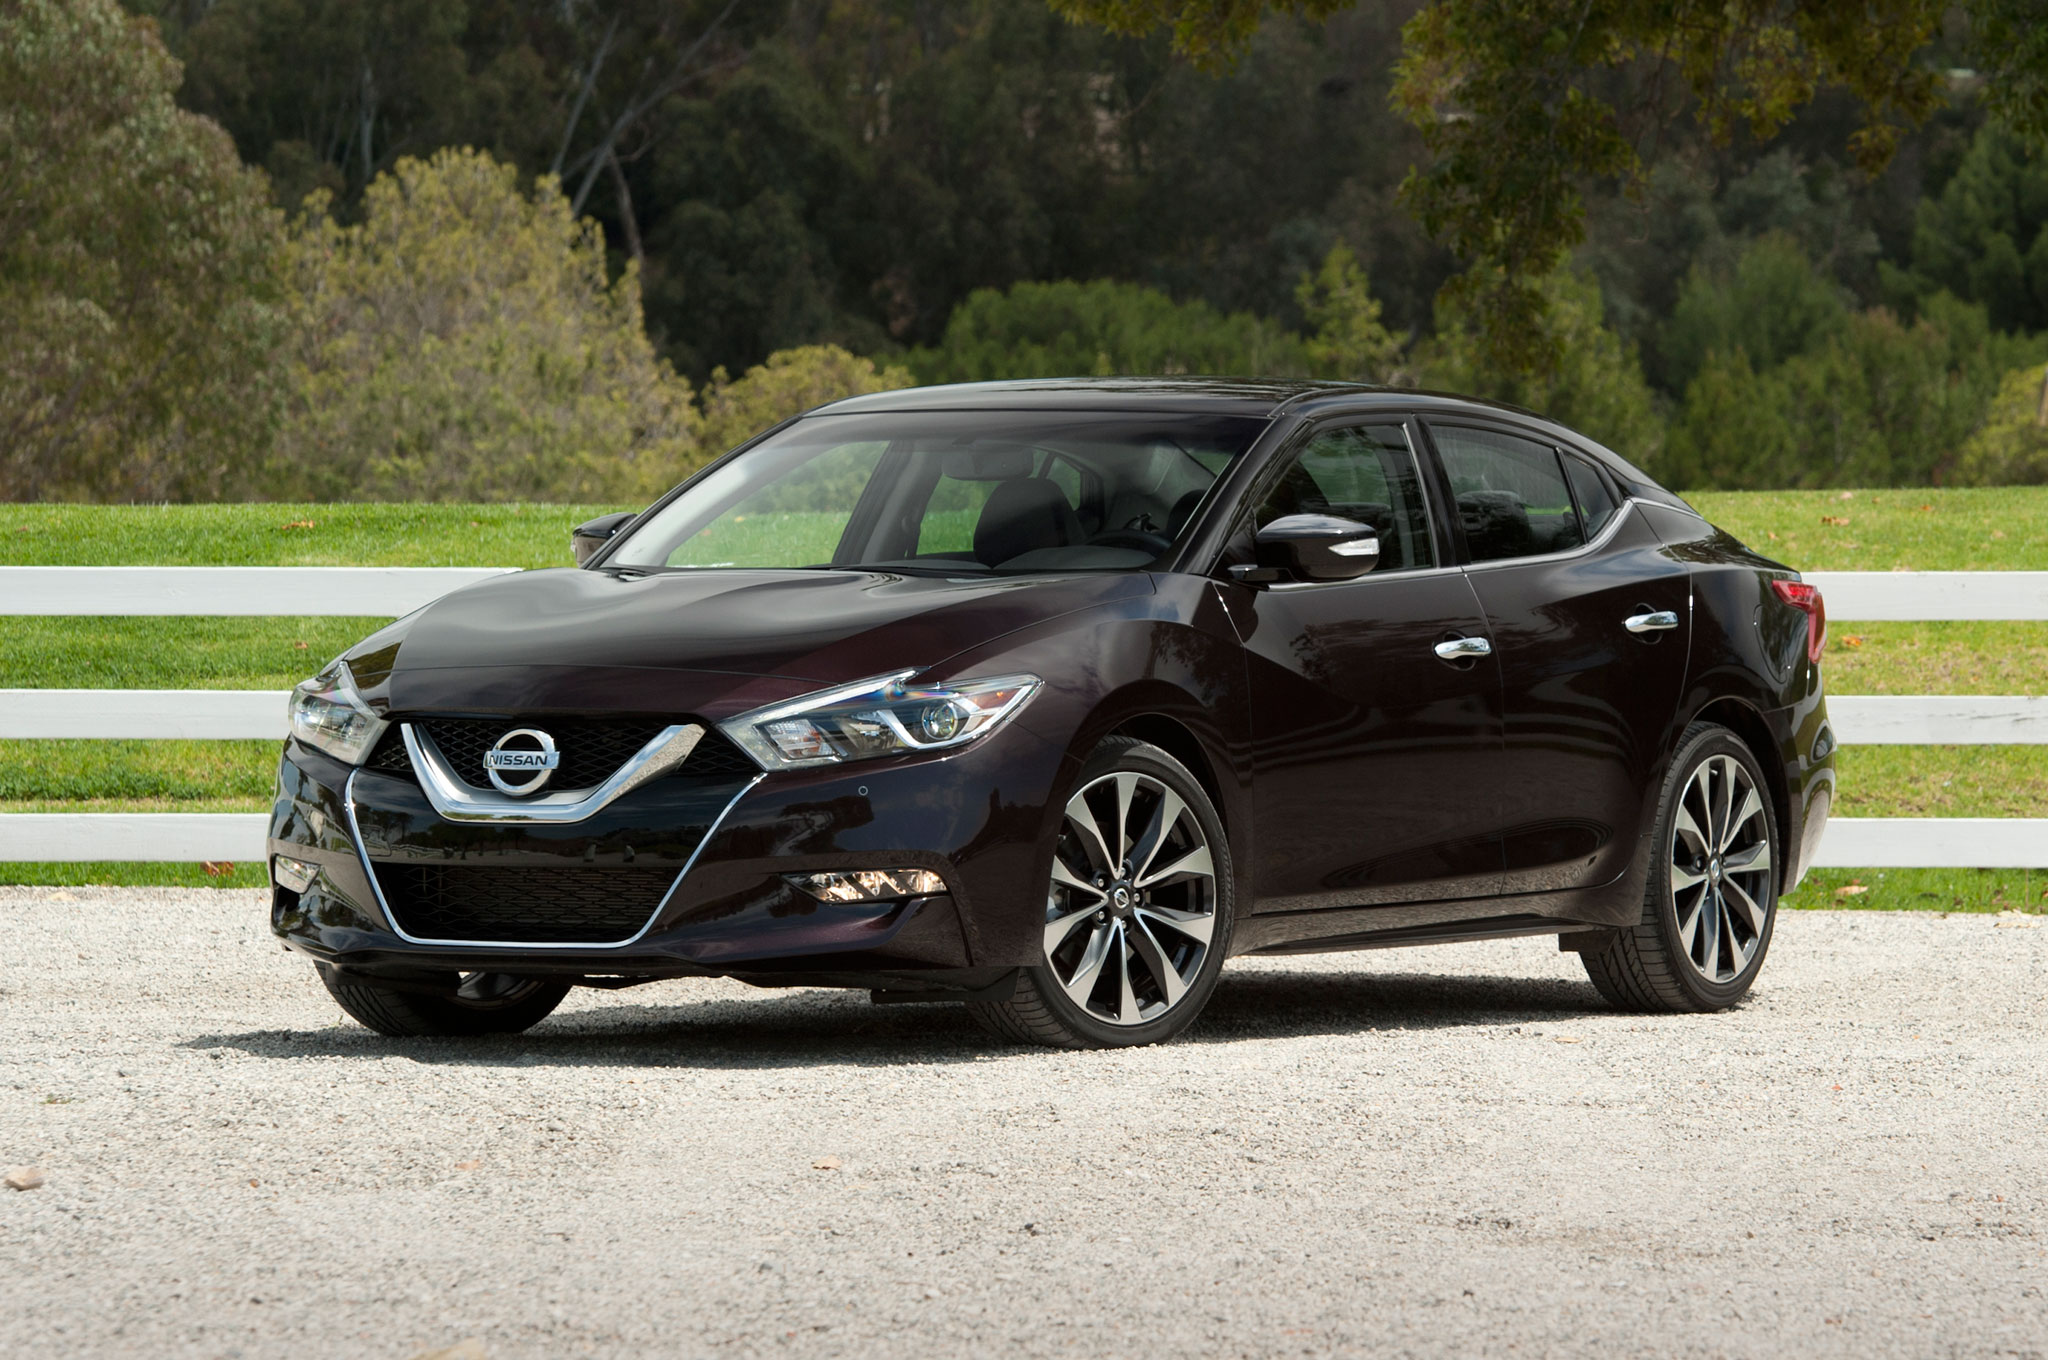 Nissan Issues Stop Sale On Some 2016 Maxima Sedans